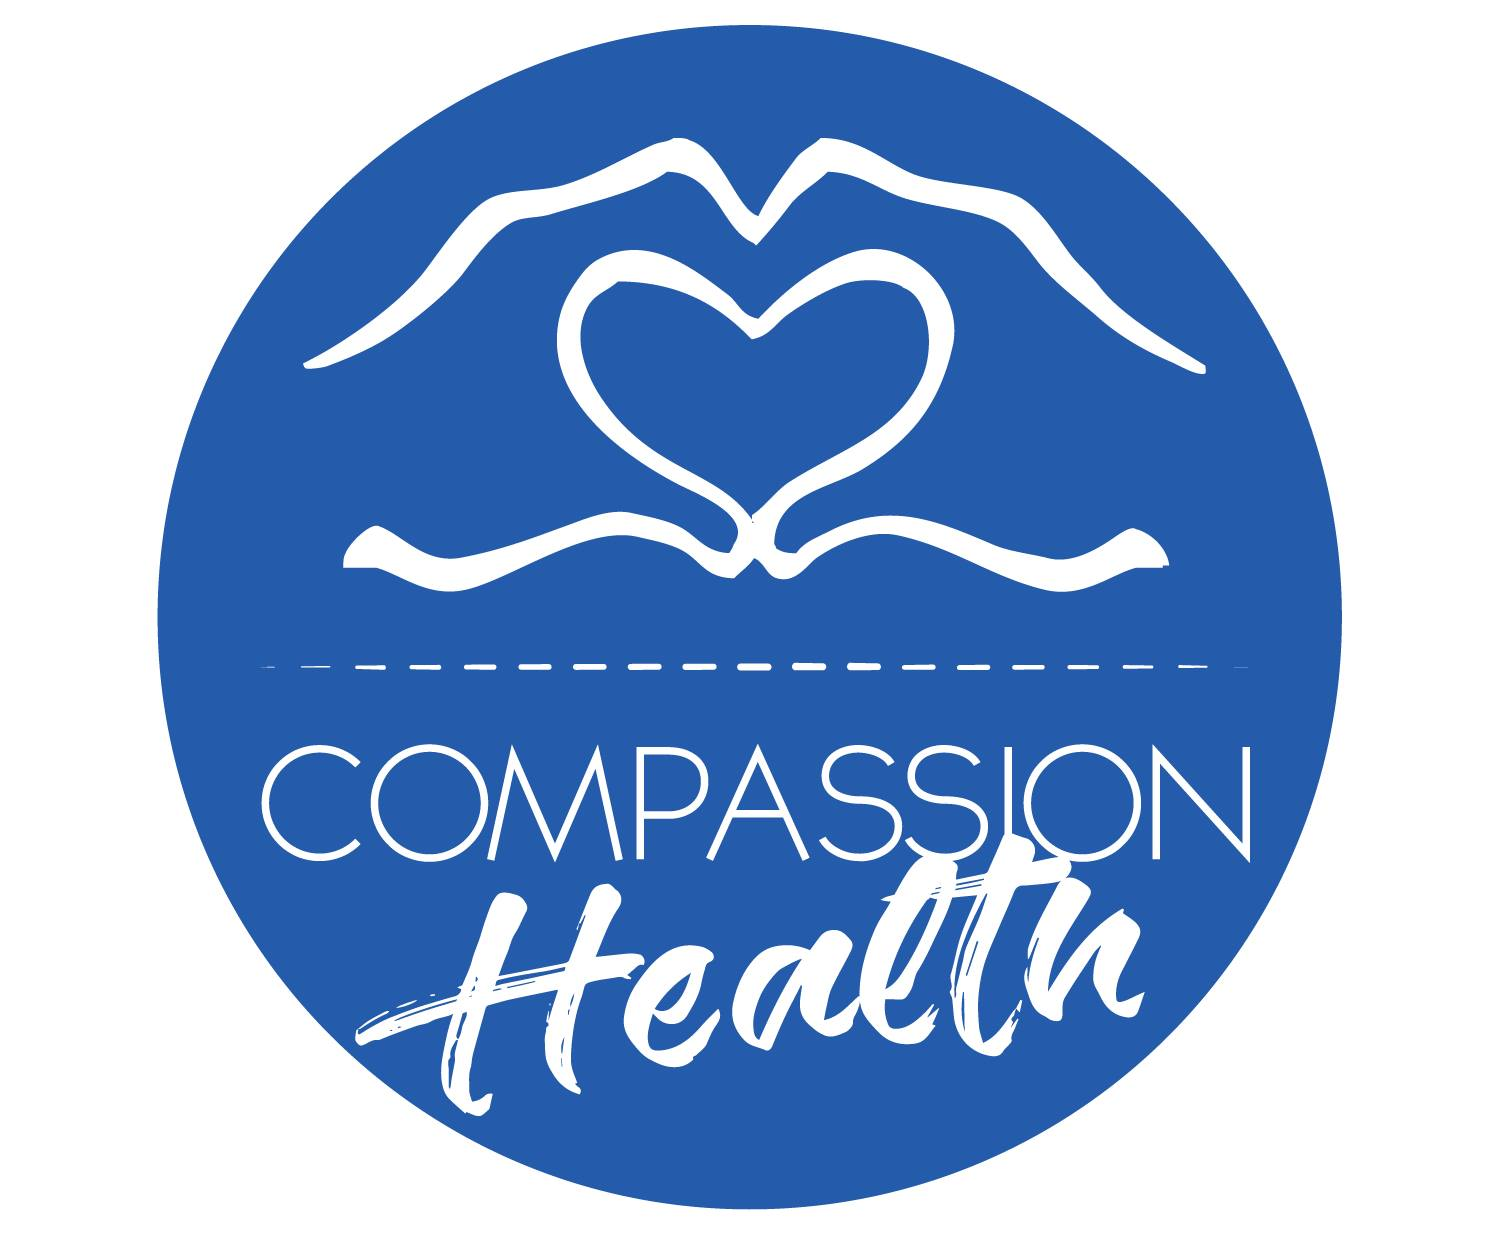 Compassion Health Clinic for less fortunate